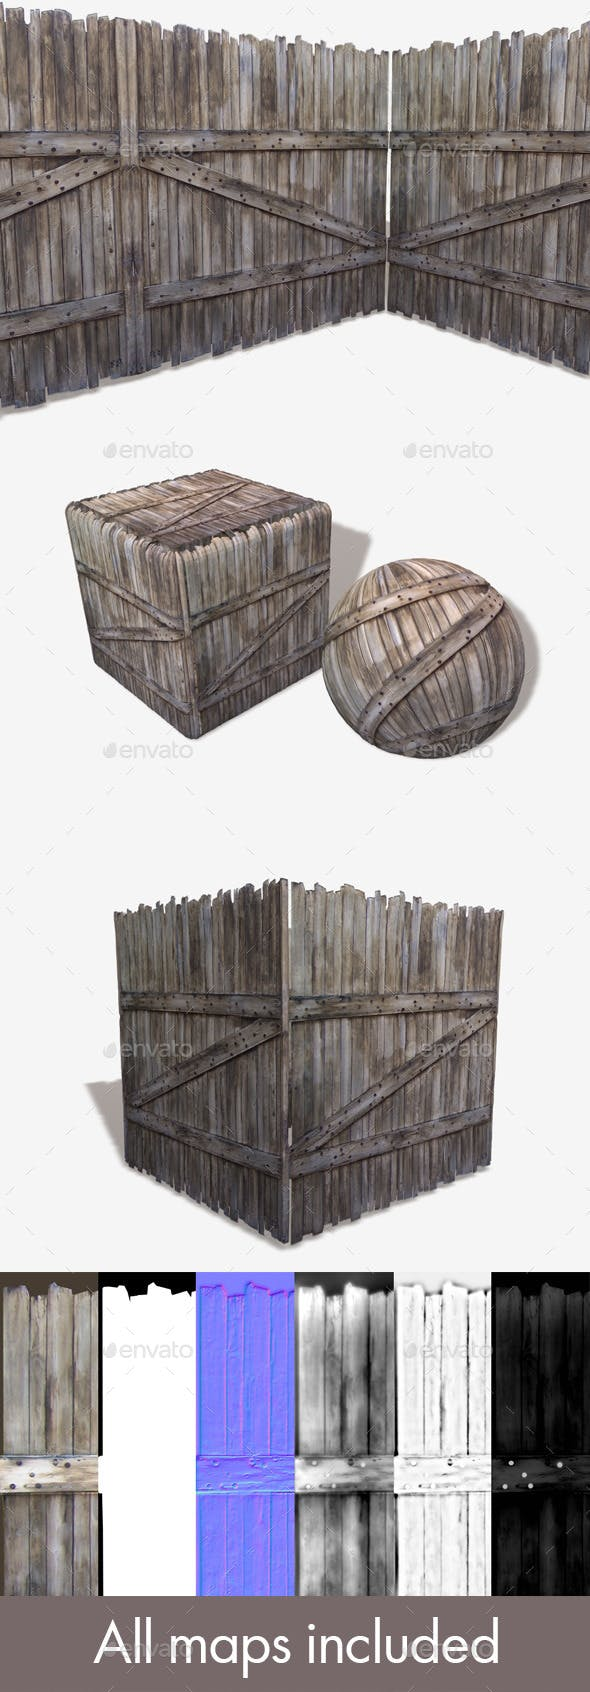 Tall Wooden Gate Seamless Texture - 3DOcean Item for Sale